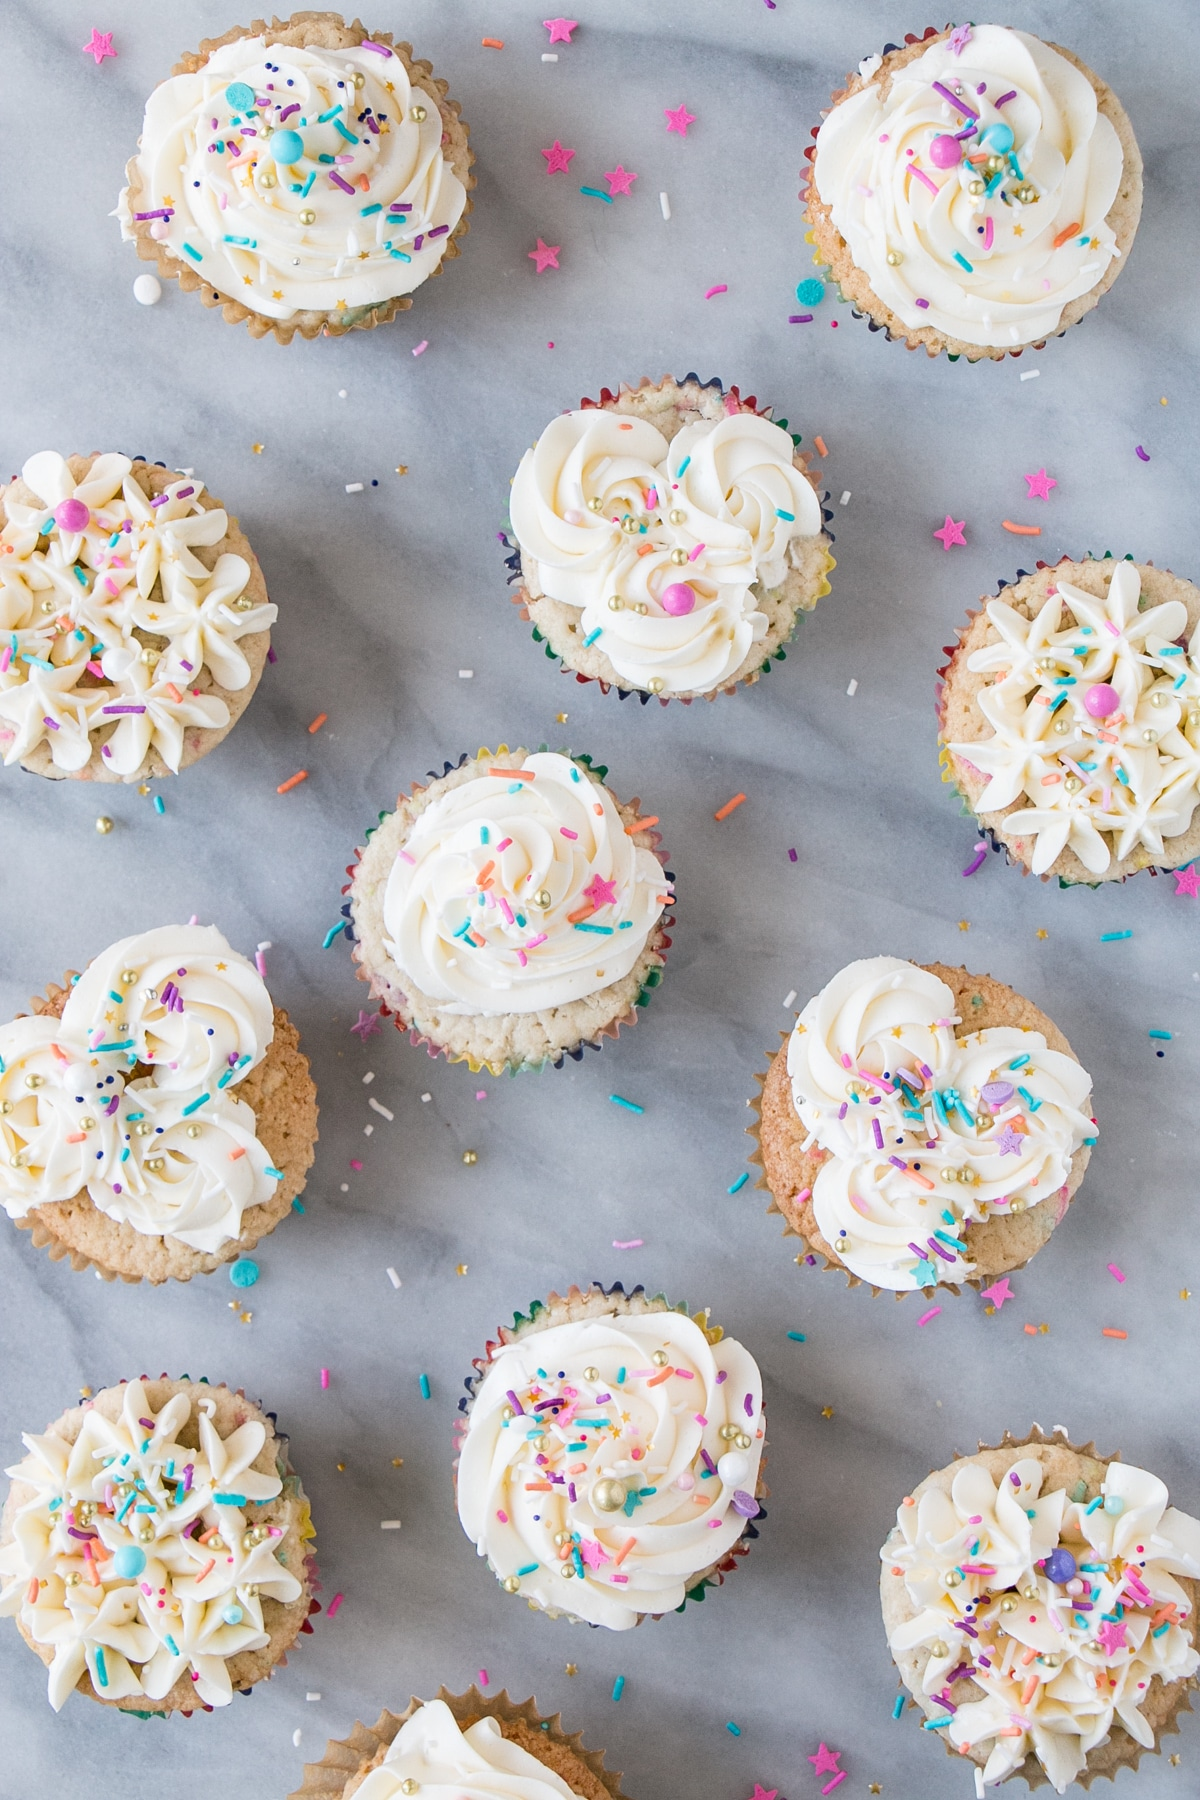 Momofuku Milk Bar Cake turned Birthday Cupcakes. Top down photo with sprinkles.